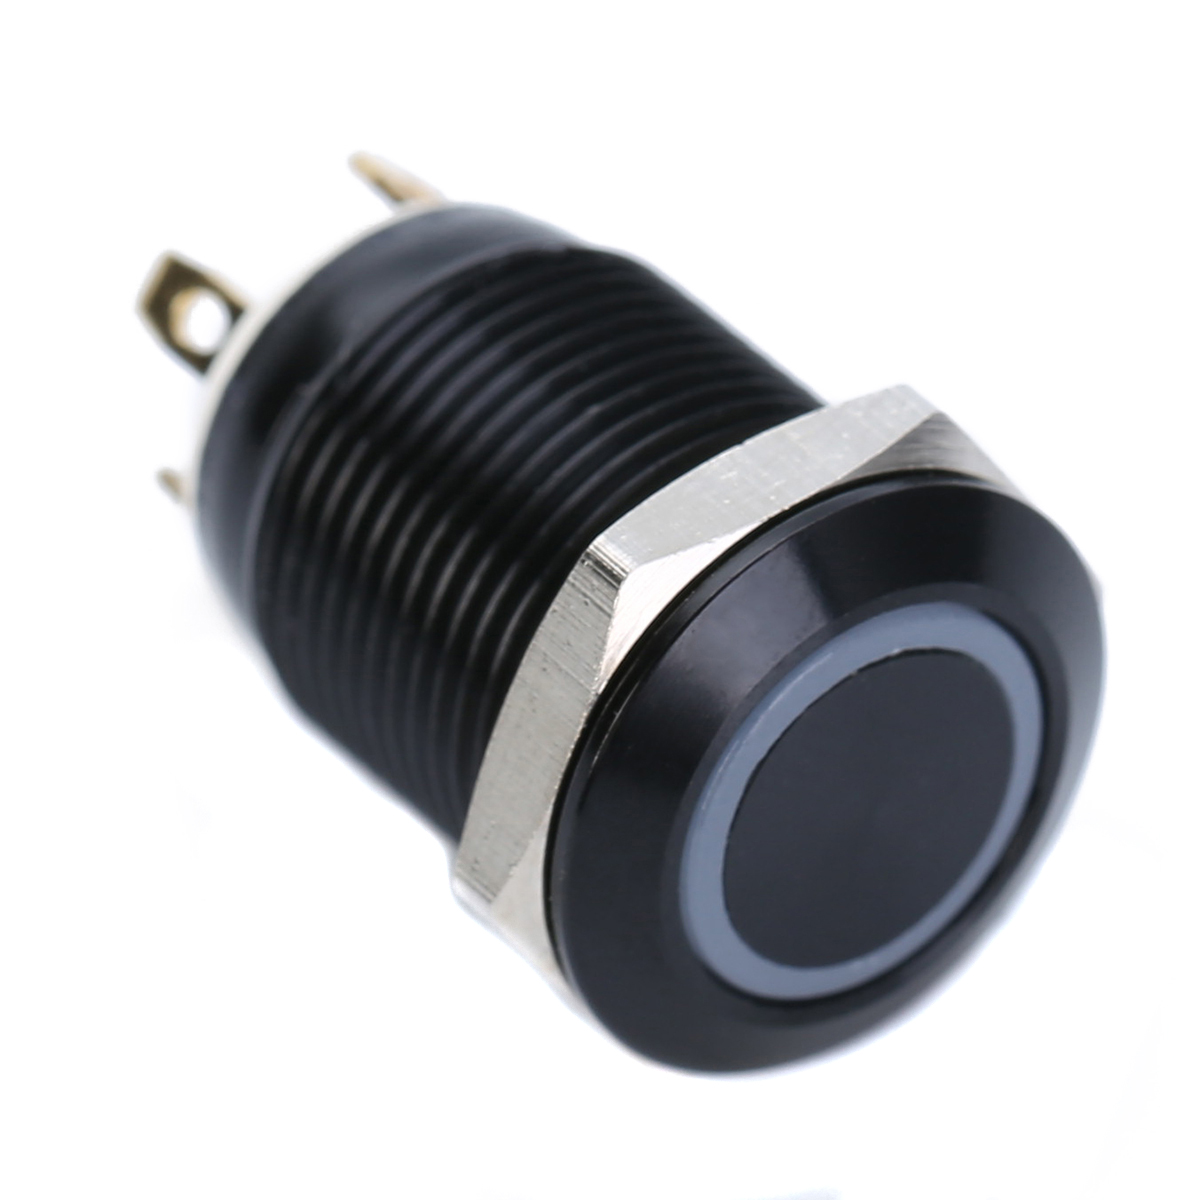 1pc Waterproof Led Light Momentary Switch Durable Black 4 Pin 12mm ...